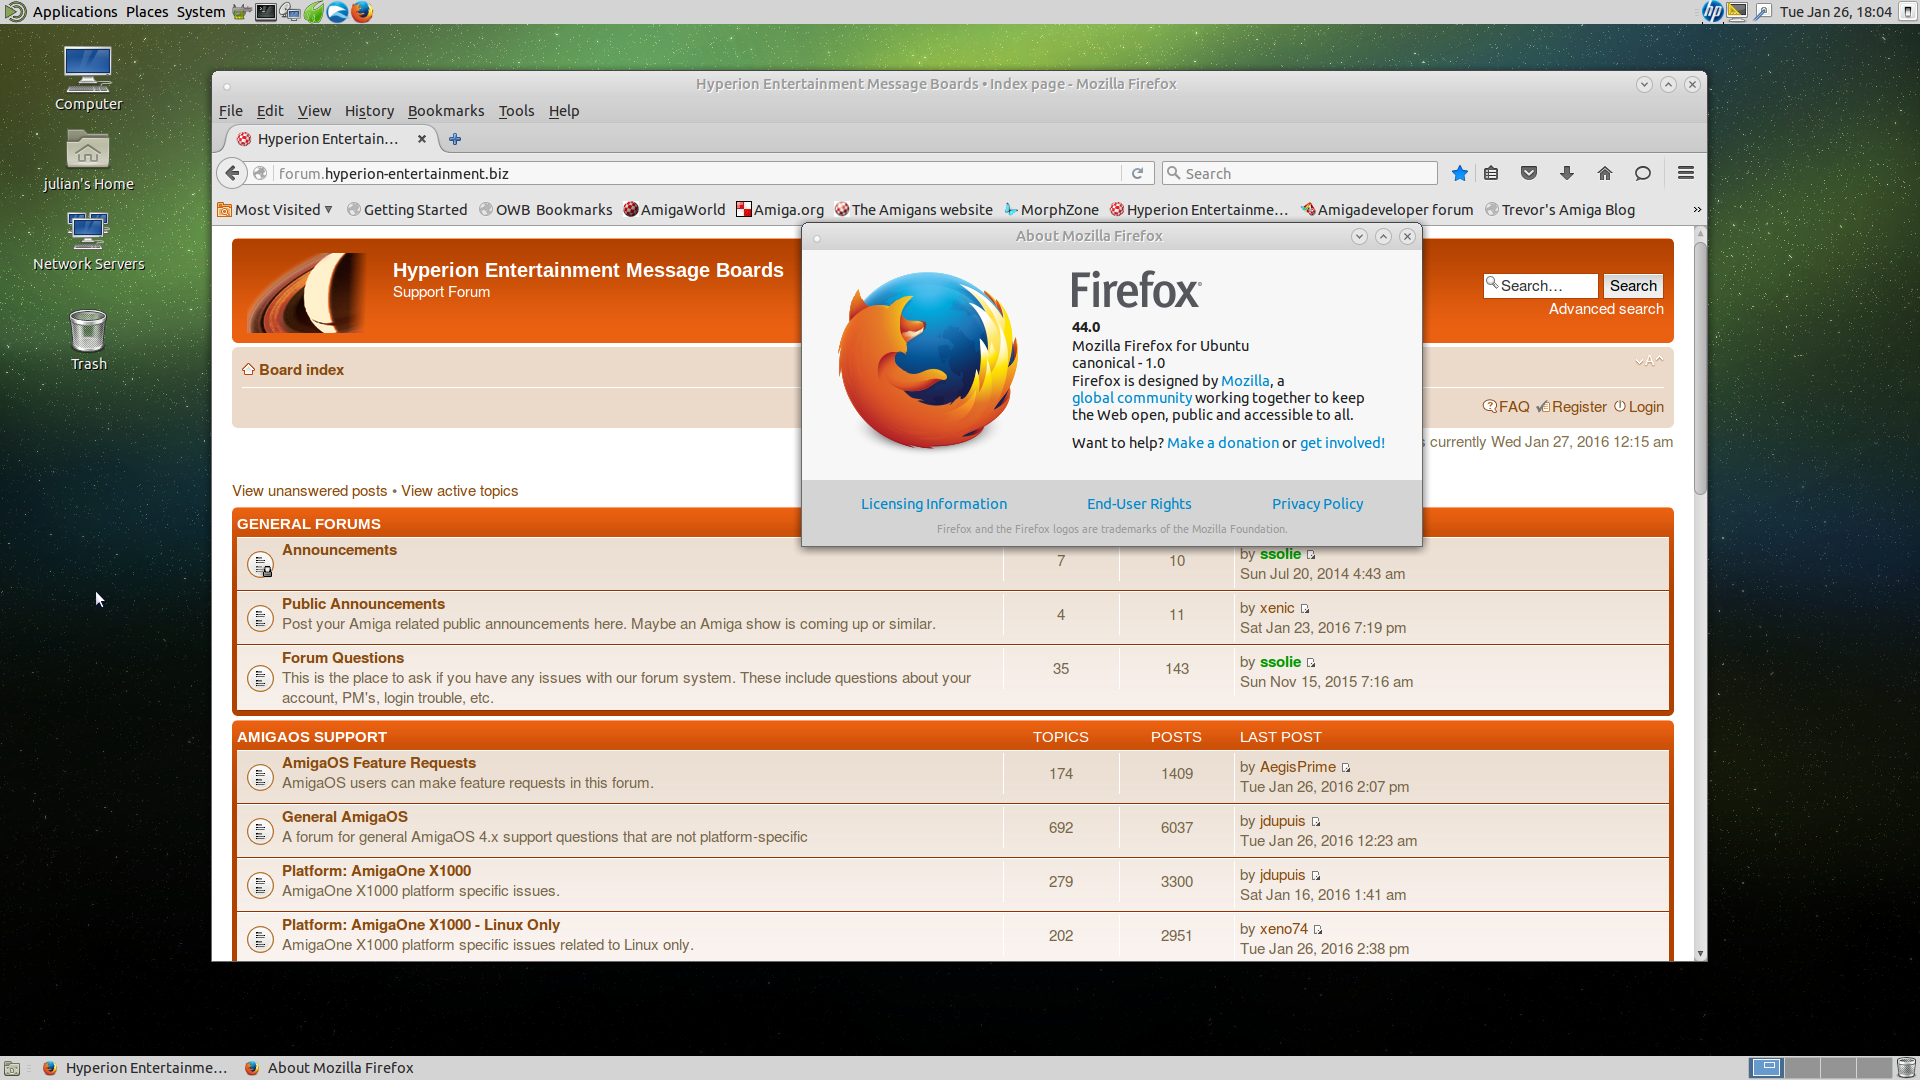 FireFox44.png